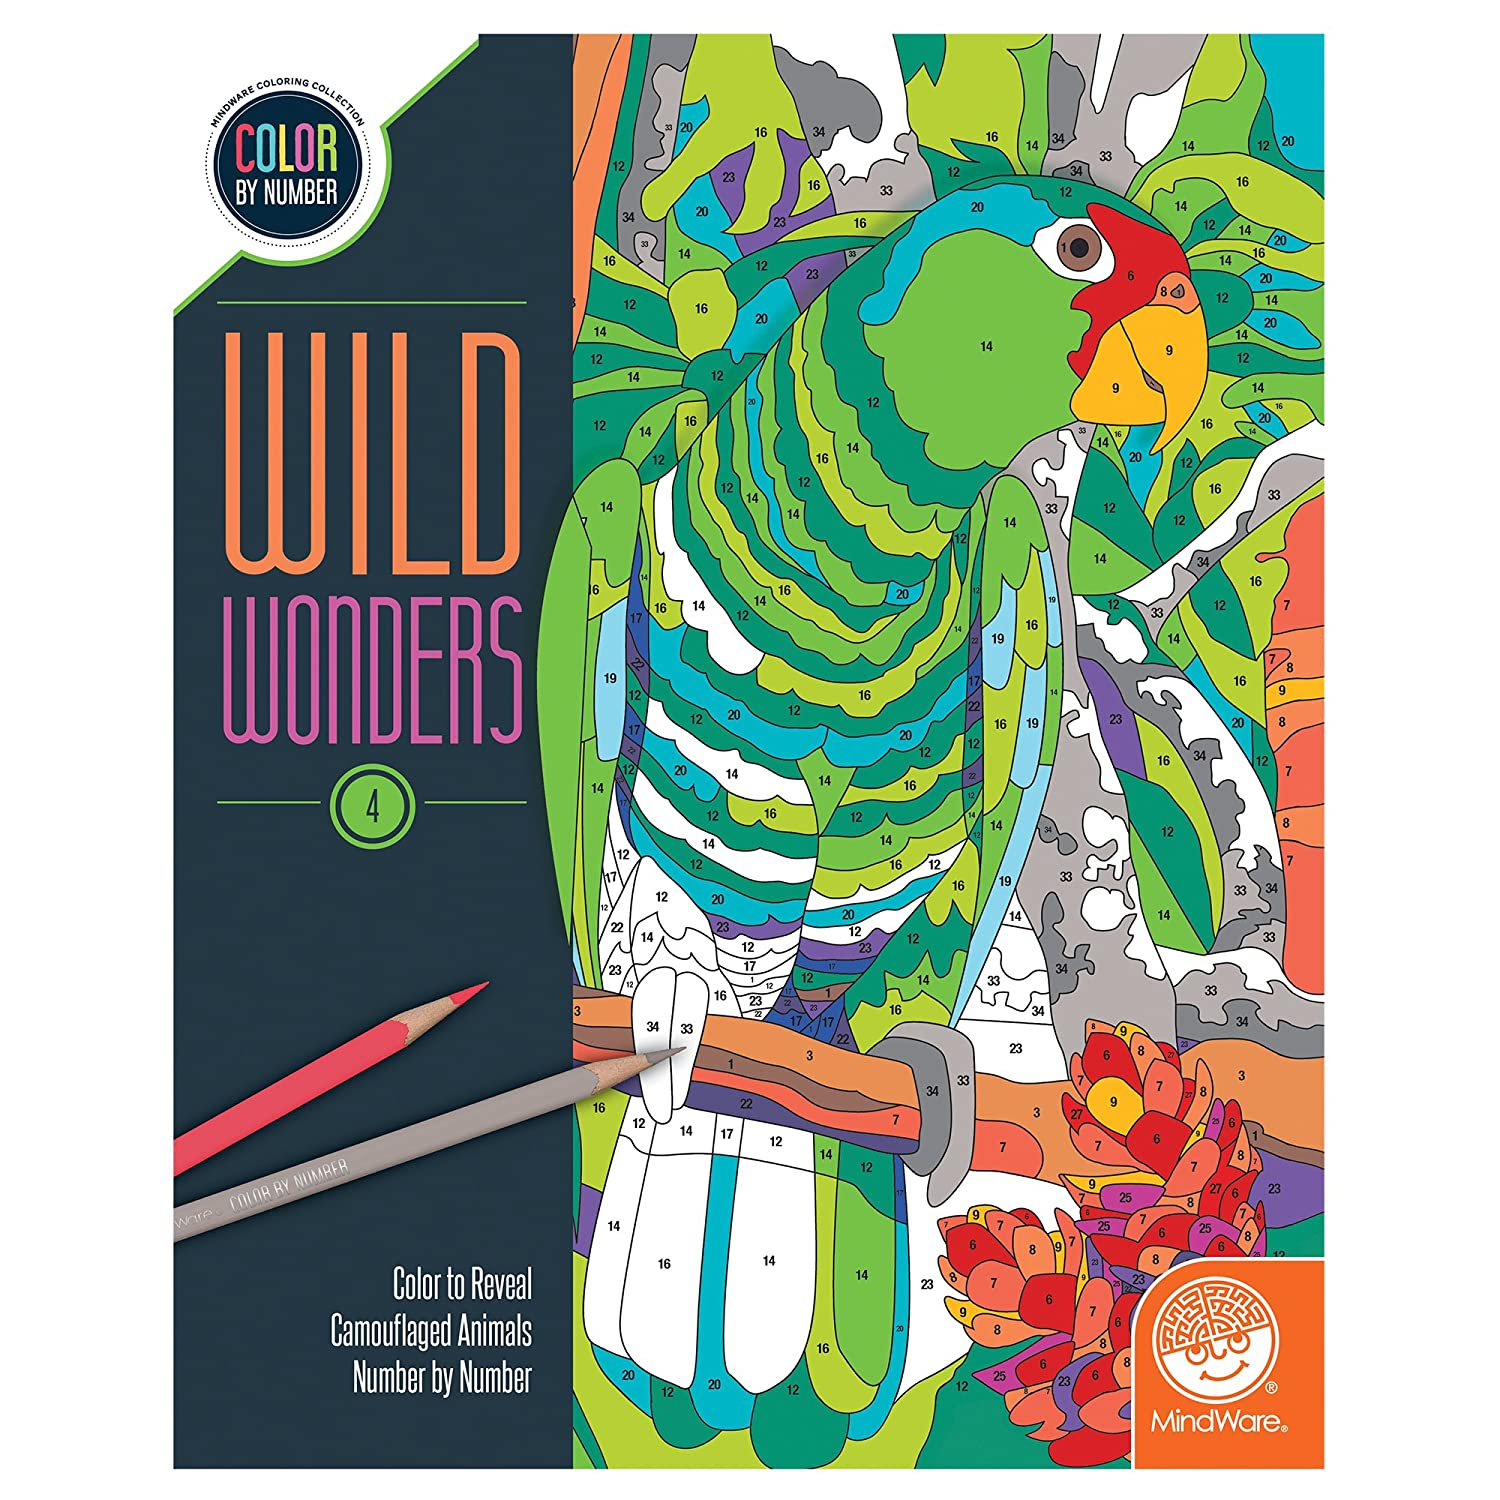 Amazon.com: Wild Wonders Color by Number: Book 4: Toys & Games